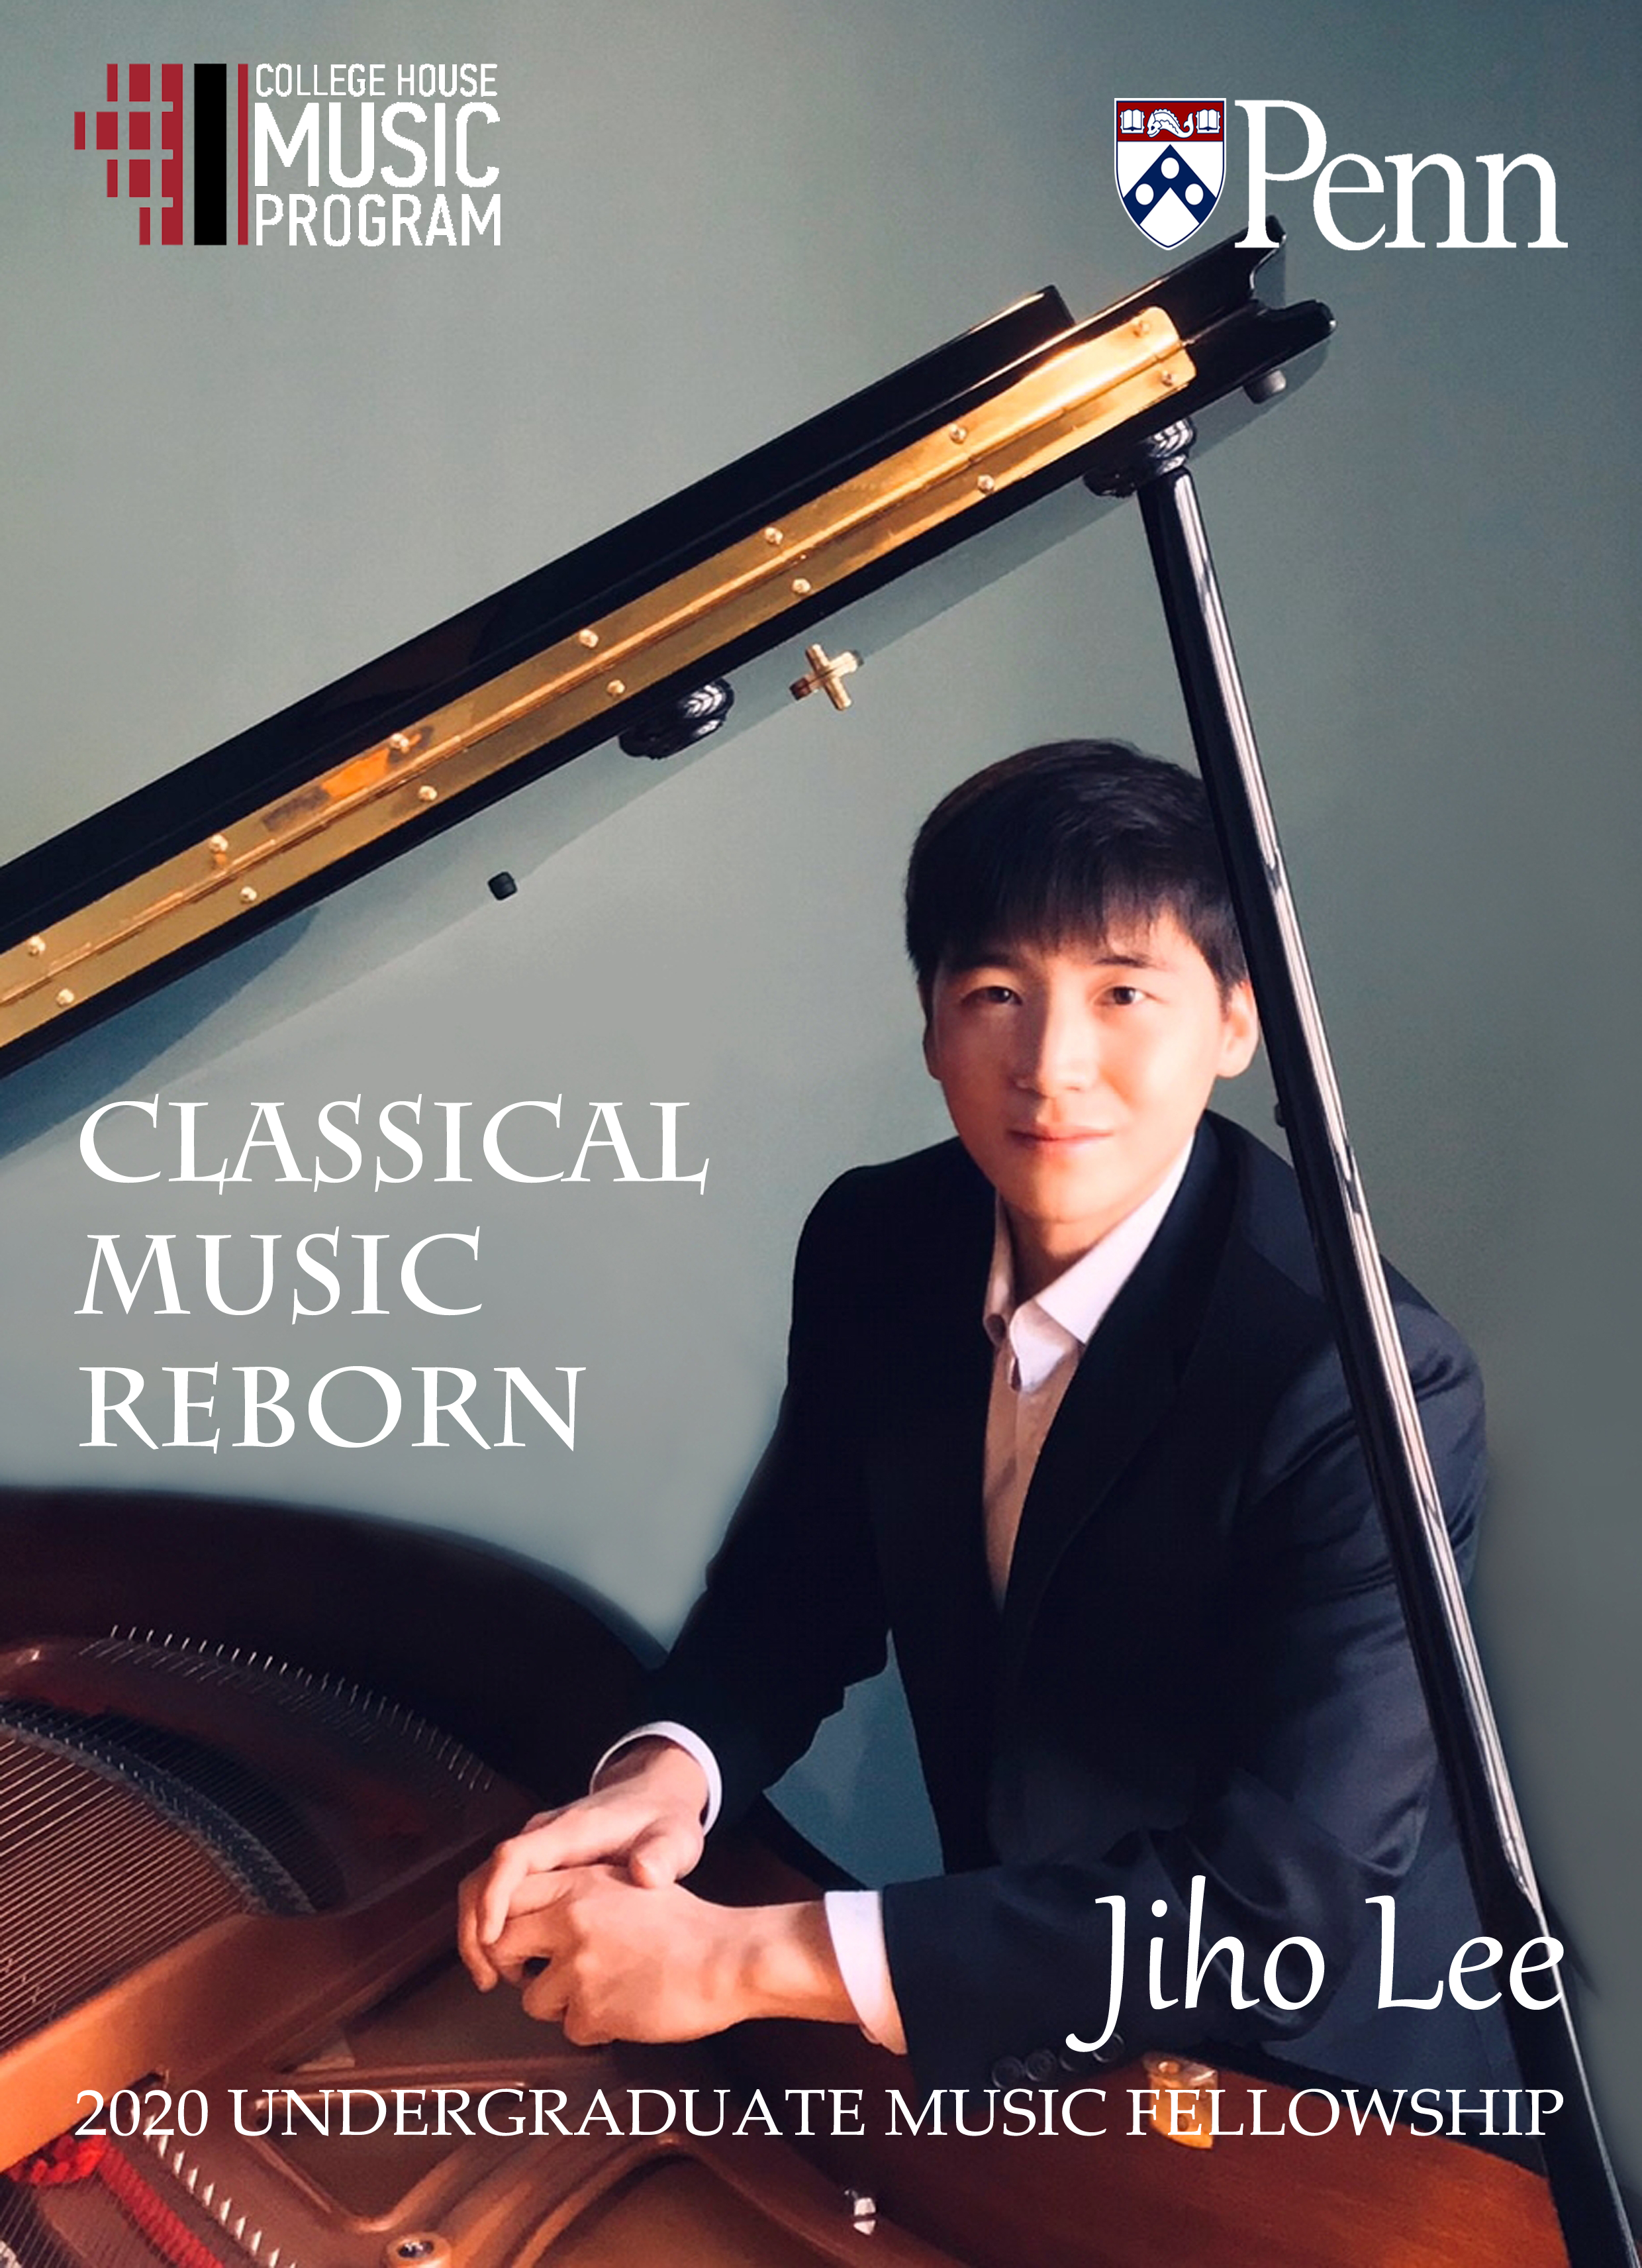 "(A photo of 2020 Undergraduate Music Fellow Jiho Lee sitting at a grand piano, with the text ""Classical Music Reborn"" and ""Jiho Lee, 2020 Undergraduate Music Fellowship"")"